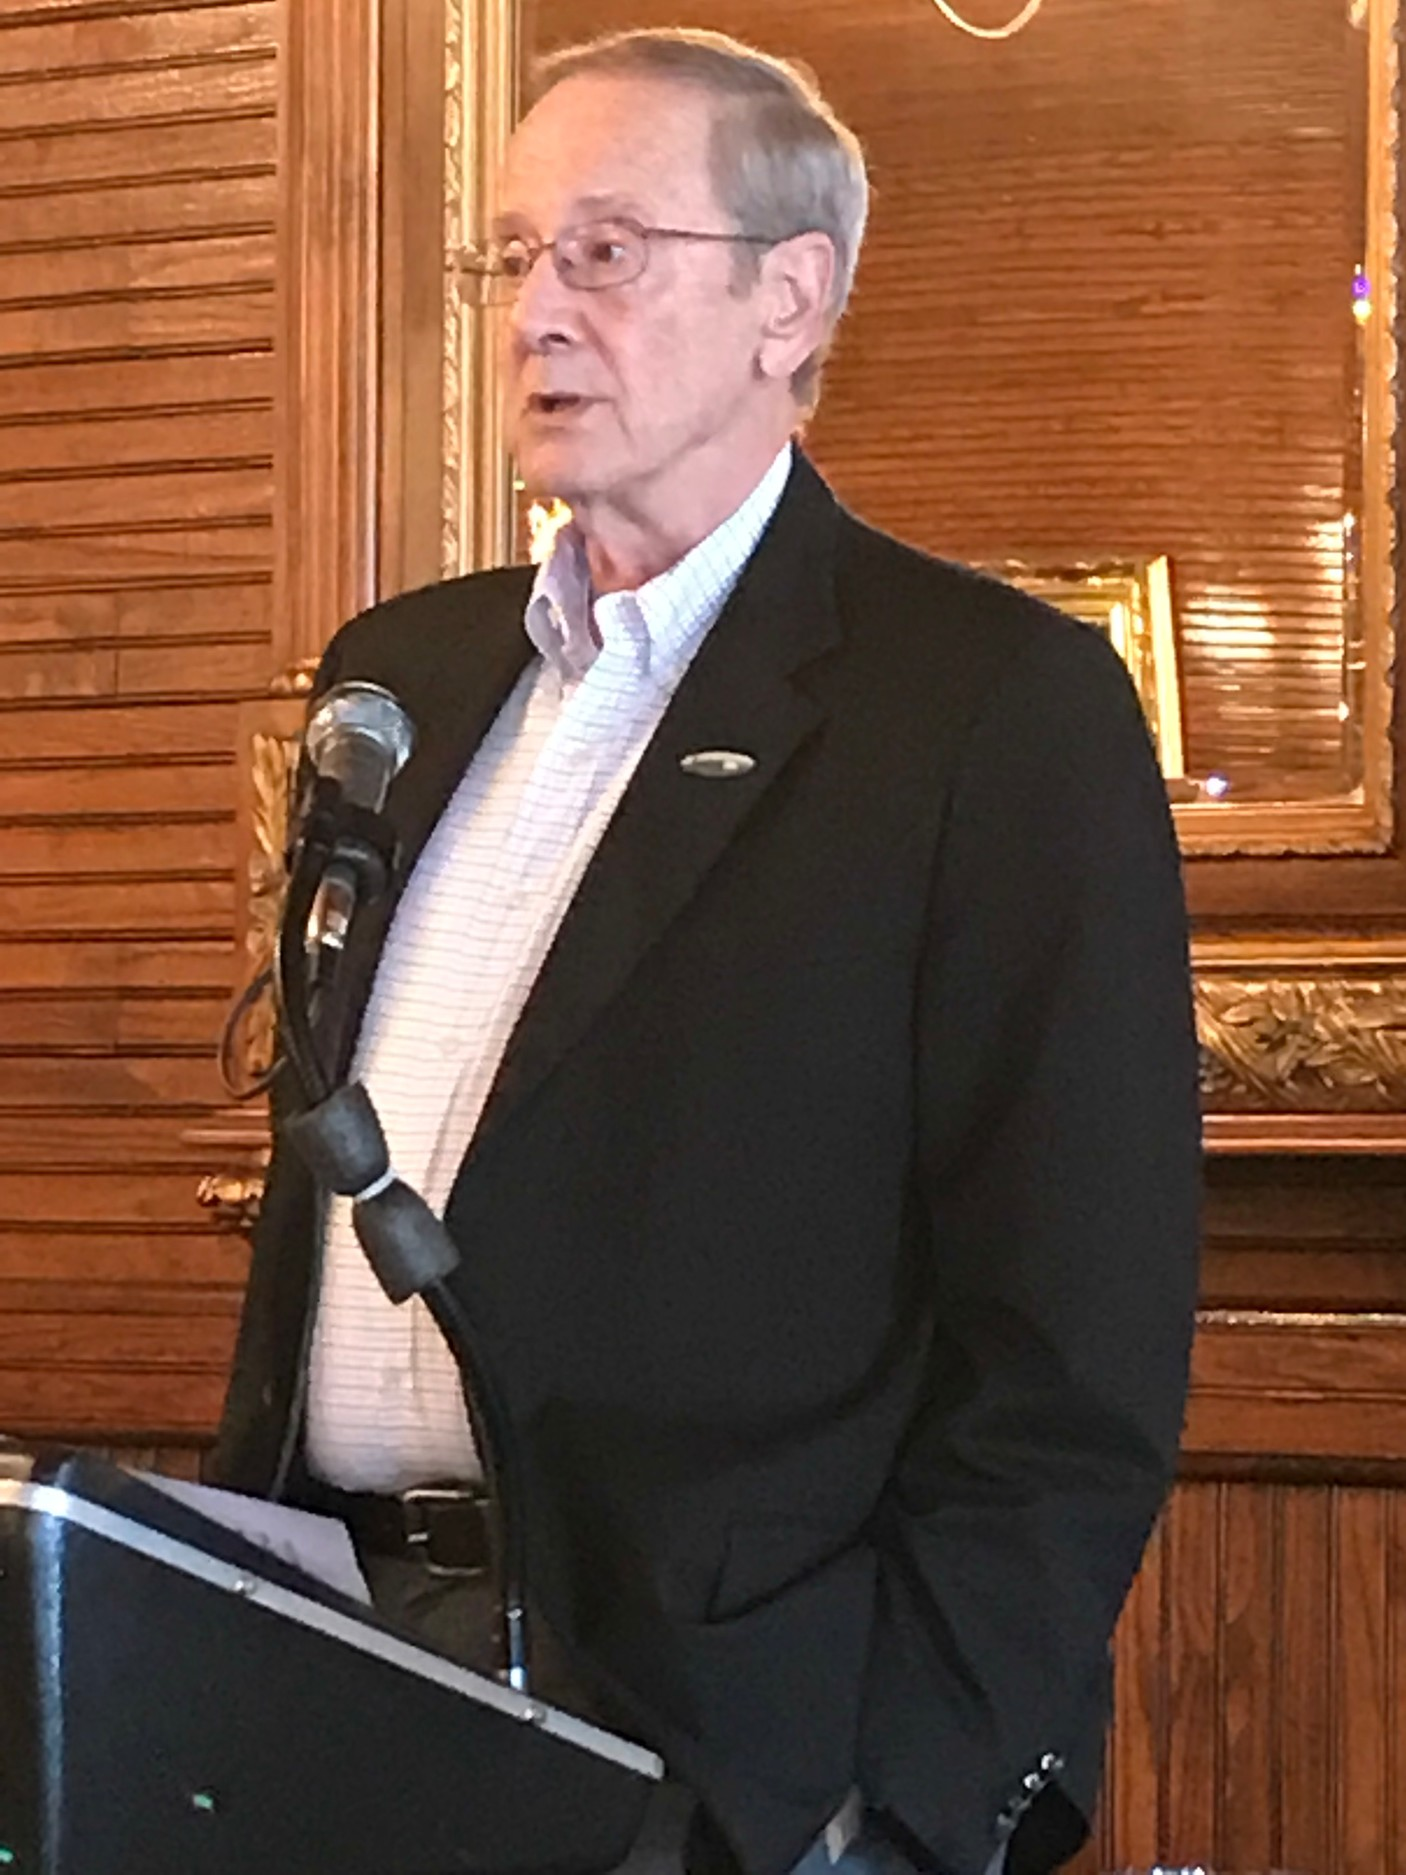 Foley Mayor John Koniar was the special guest speaker at the Foley Women's Club Kickoff Event.